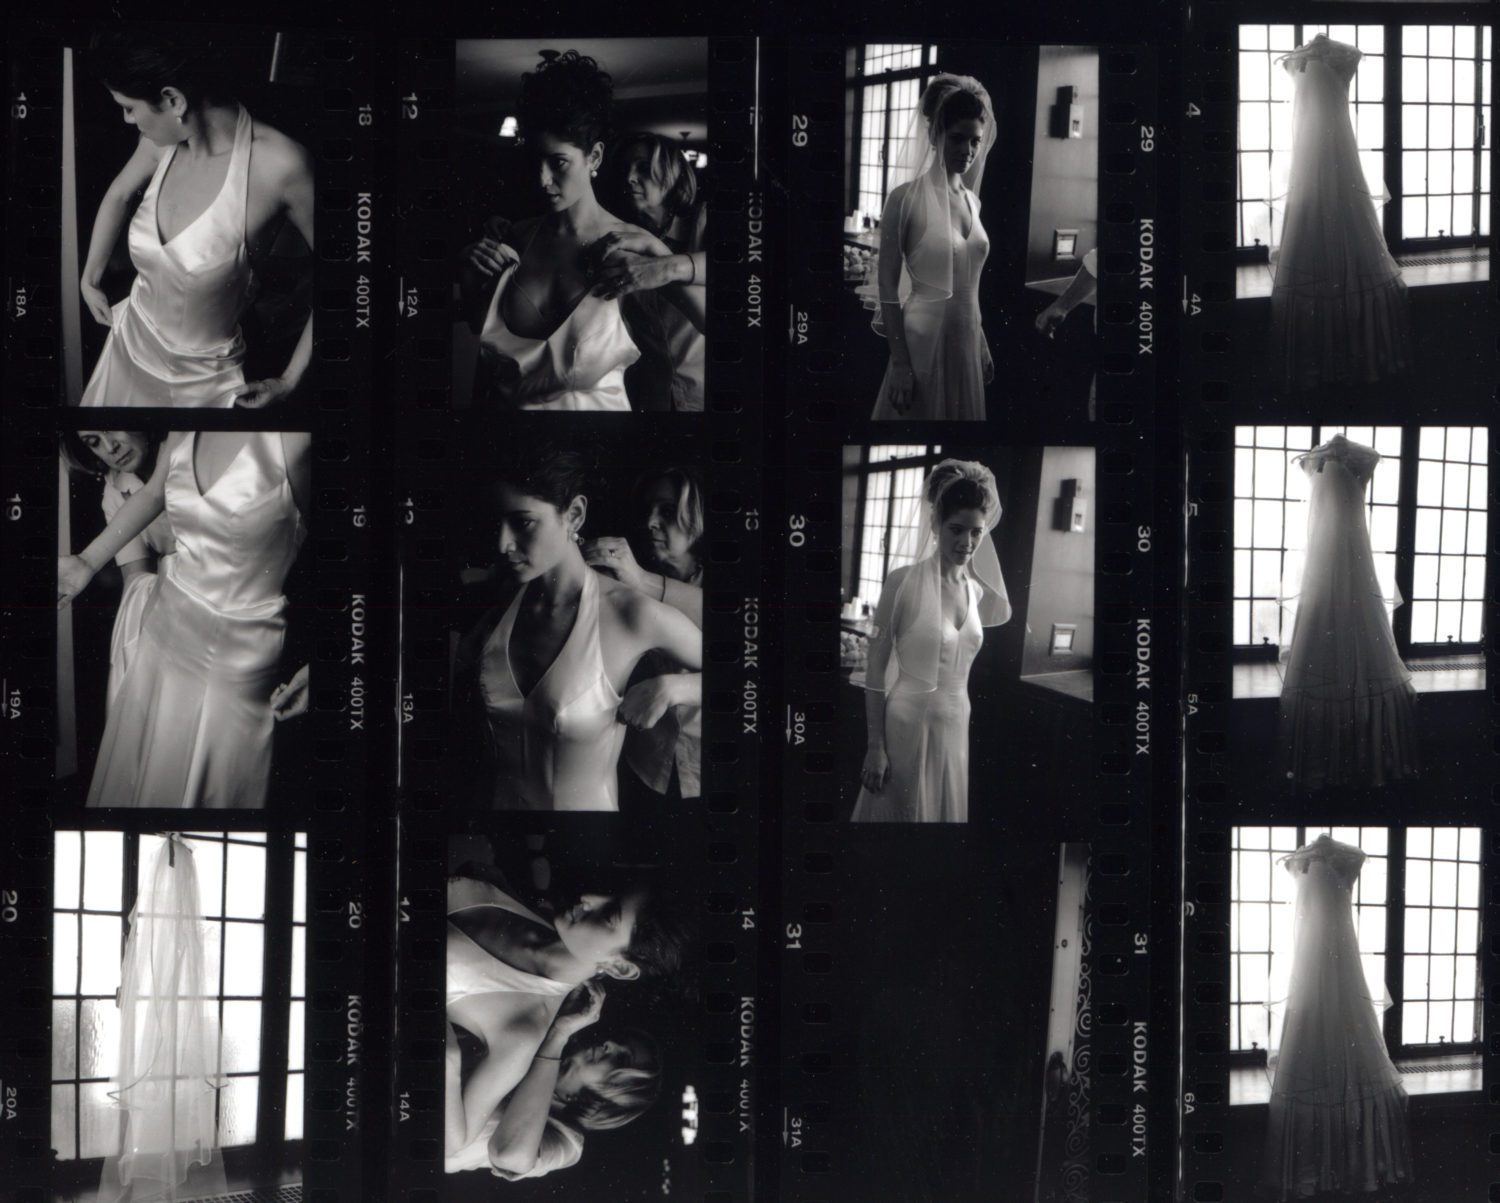 cappetta_contact sheet_bw